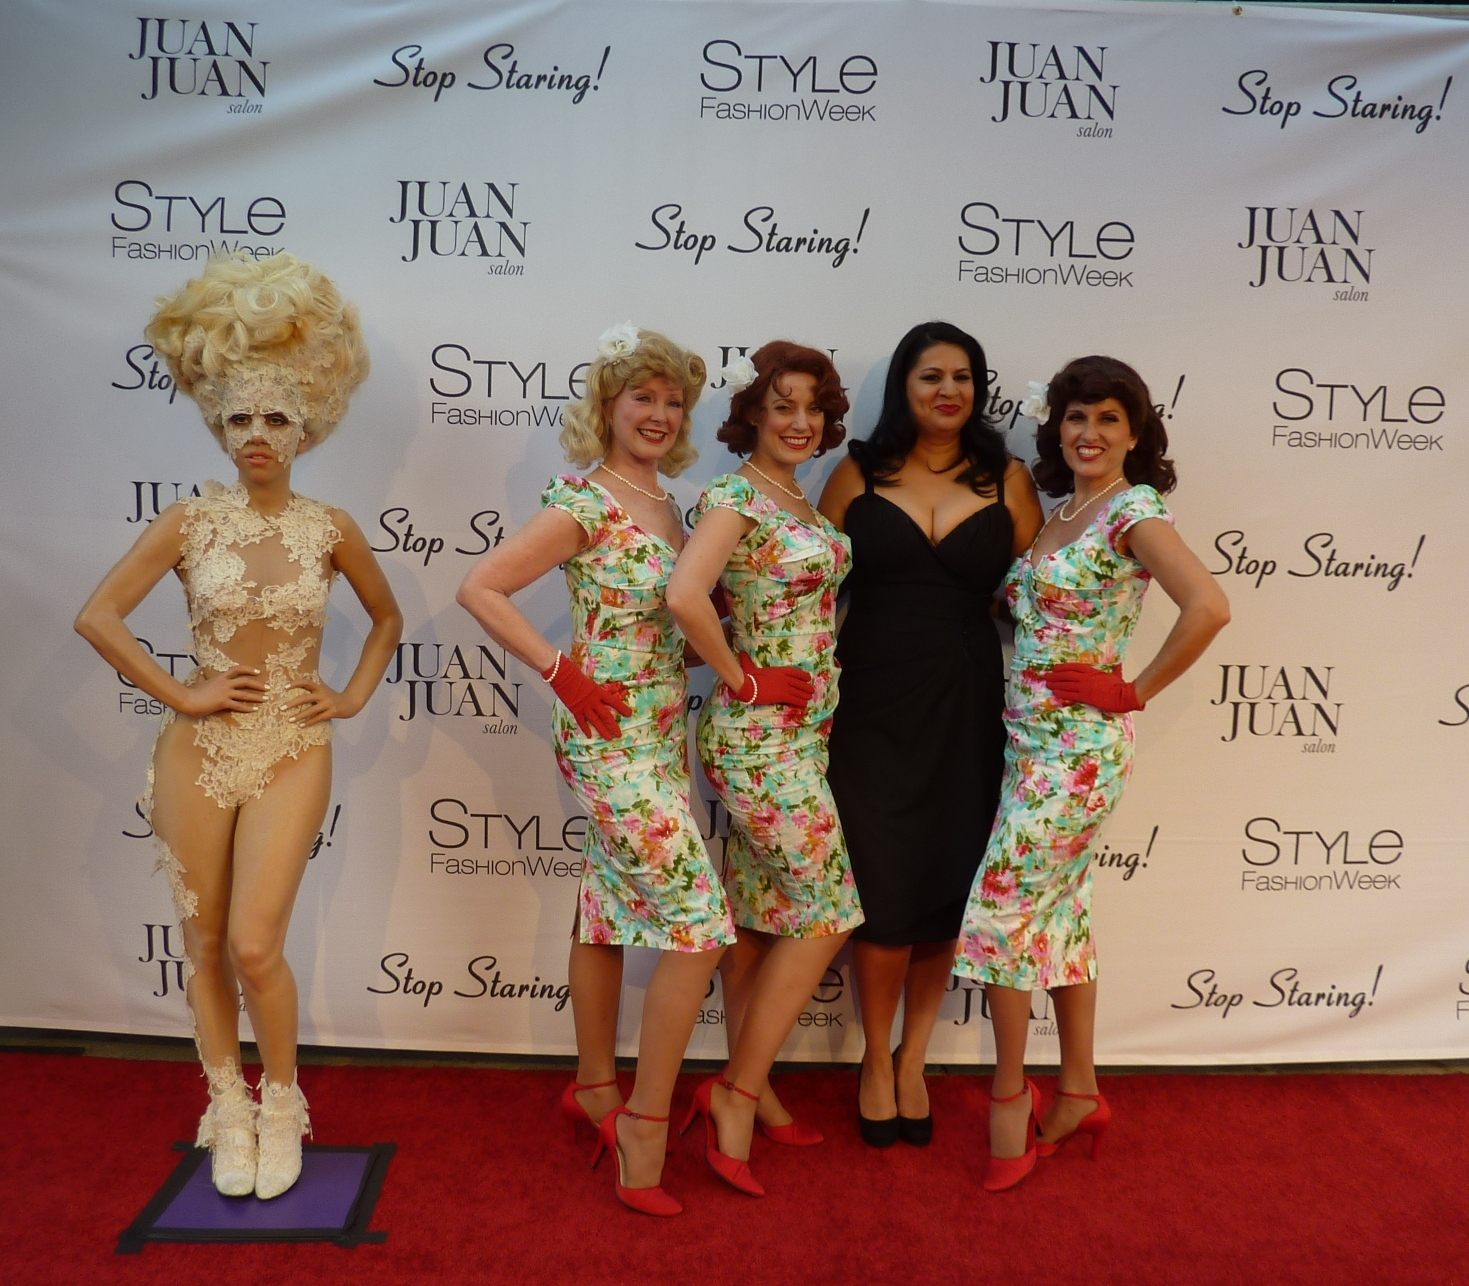 Style Fashion Week with Alicia Estrada of Stop Staring